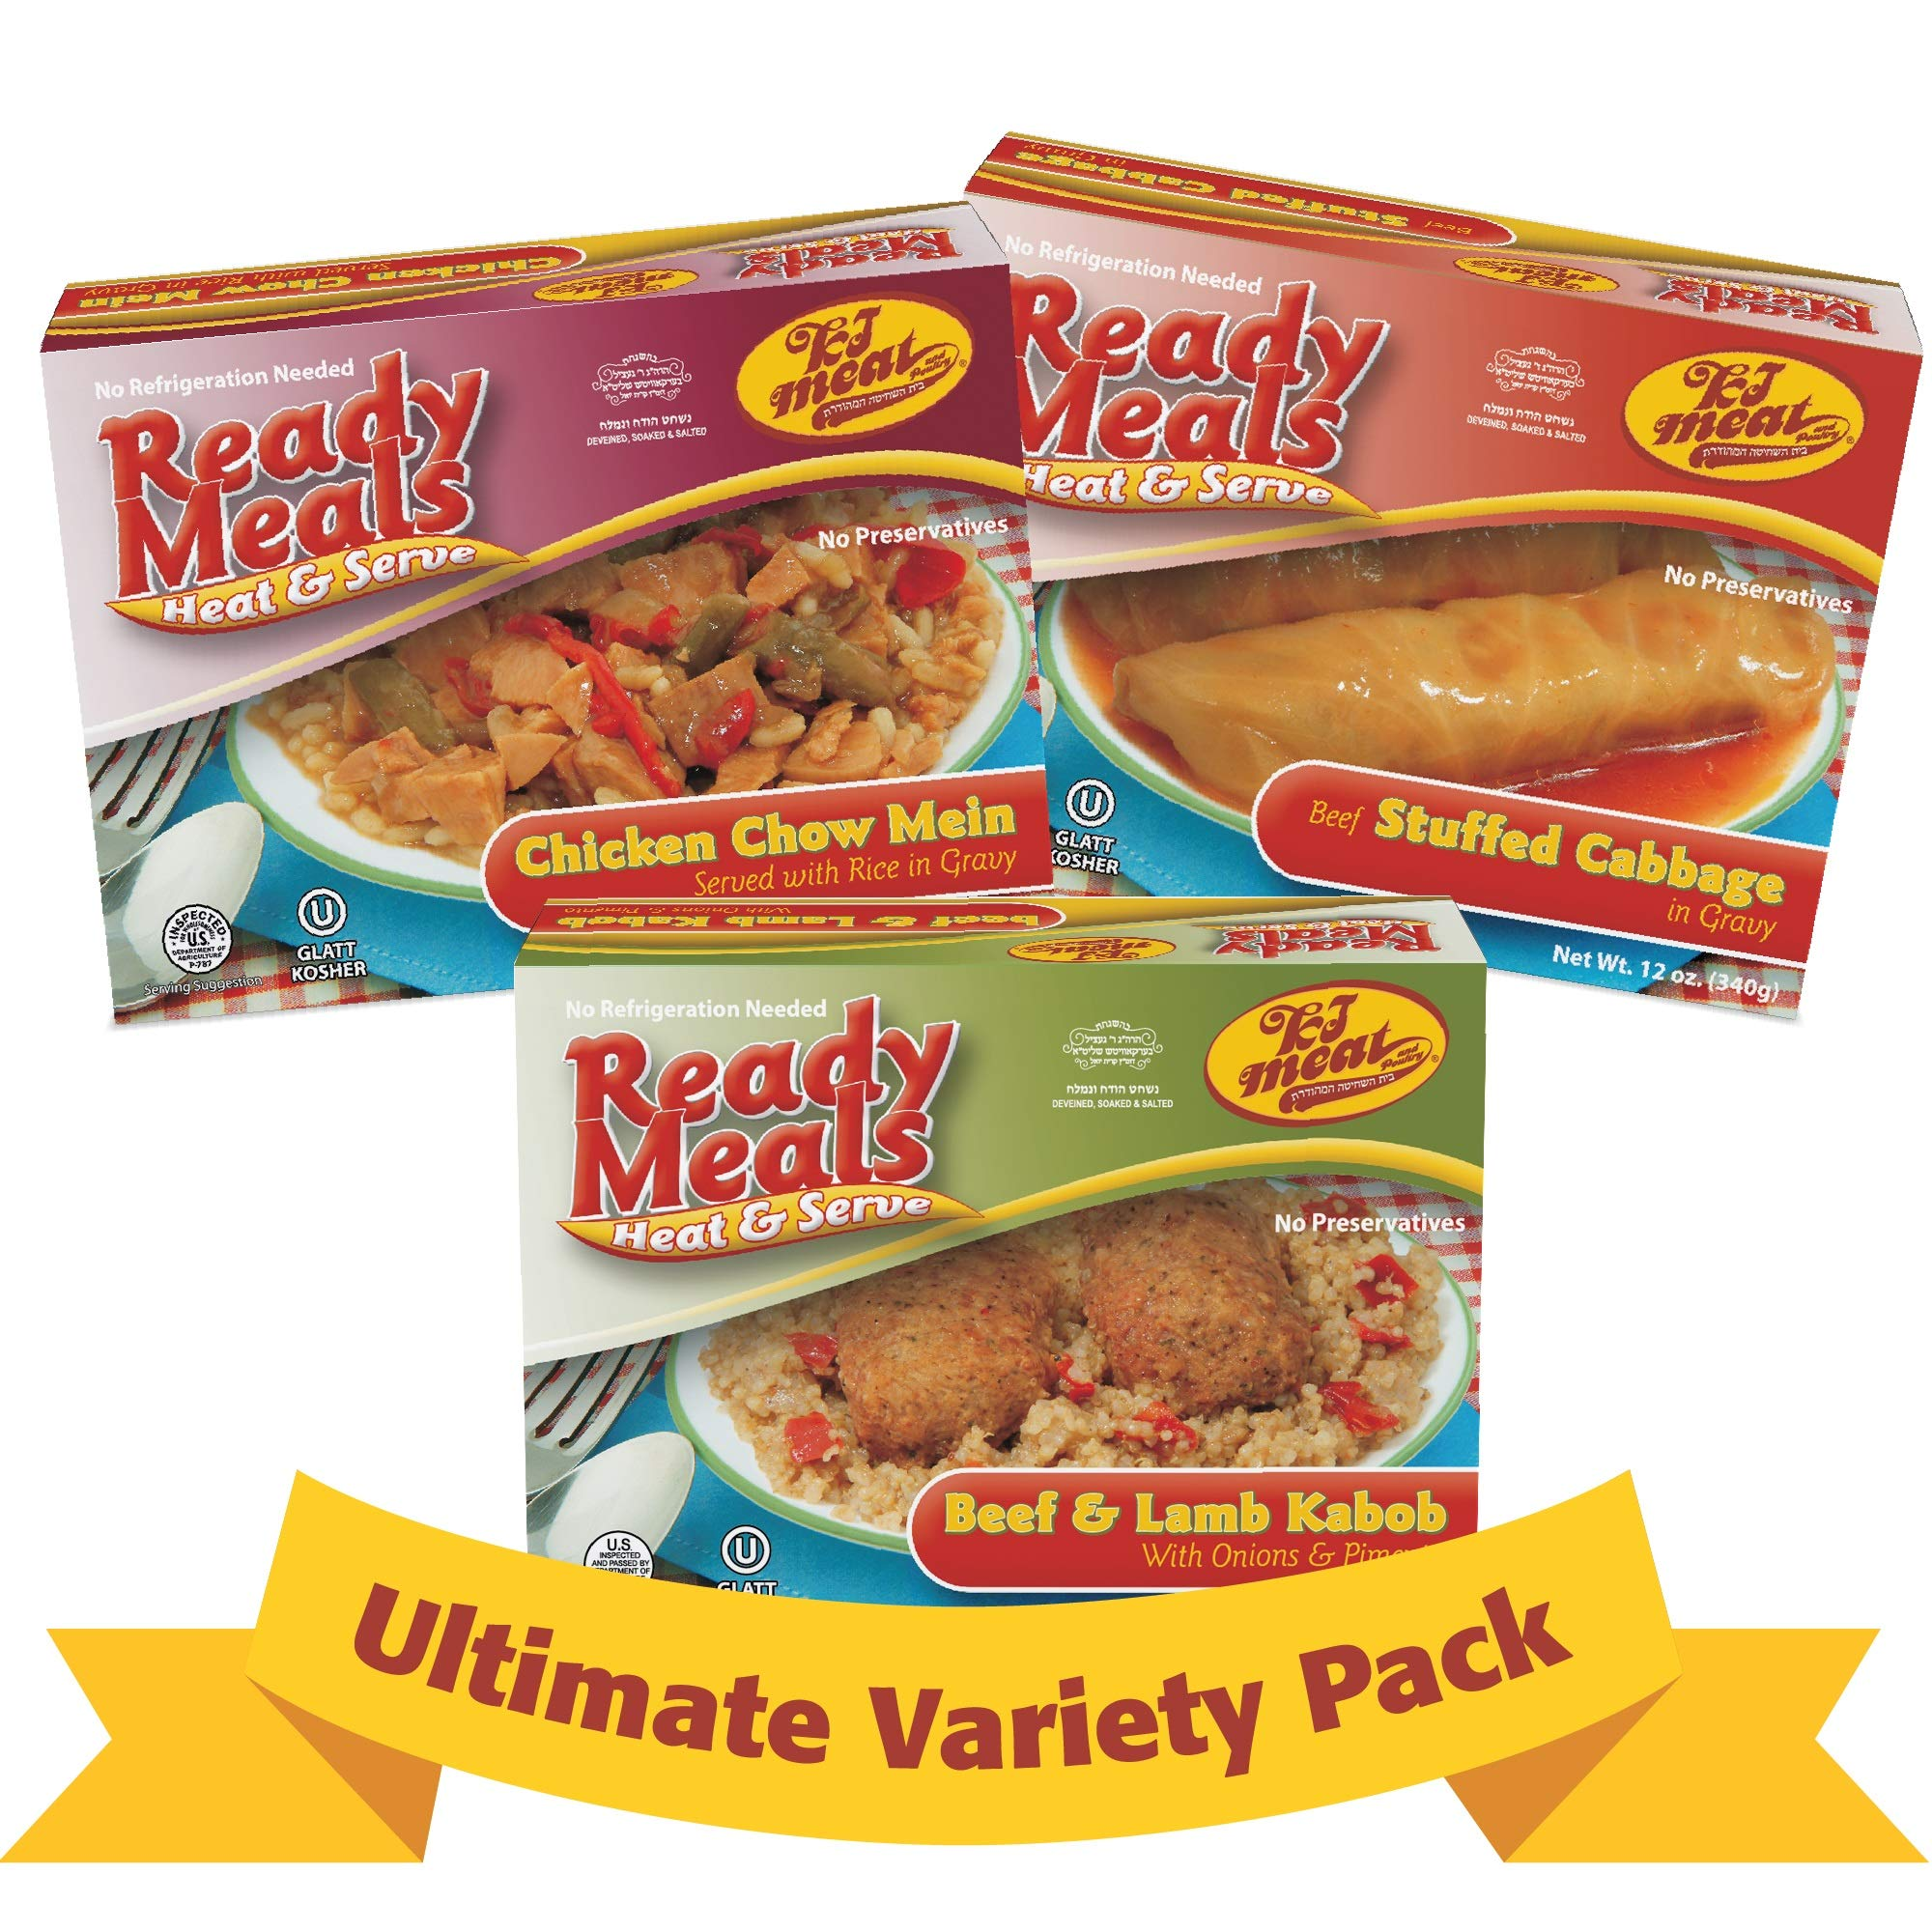 Kosher Meals Ready to Eat, Kosher Ultimate Variety Pack, Beef Stuffed Cabbage, Chicken Chow Mein, Beef & Lamb Cabob (Microwavable, Shelf Stable), Dairy Free - Glatt Kosher (12 ounce - Pack of 3) by KJ Poultry